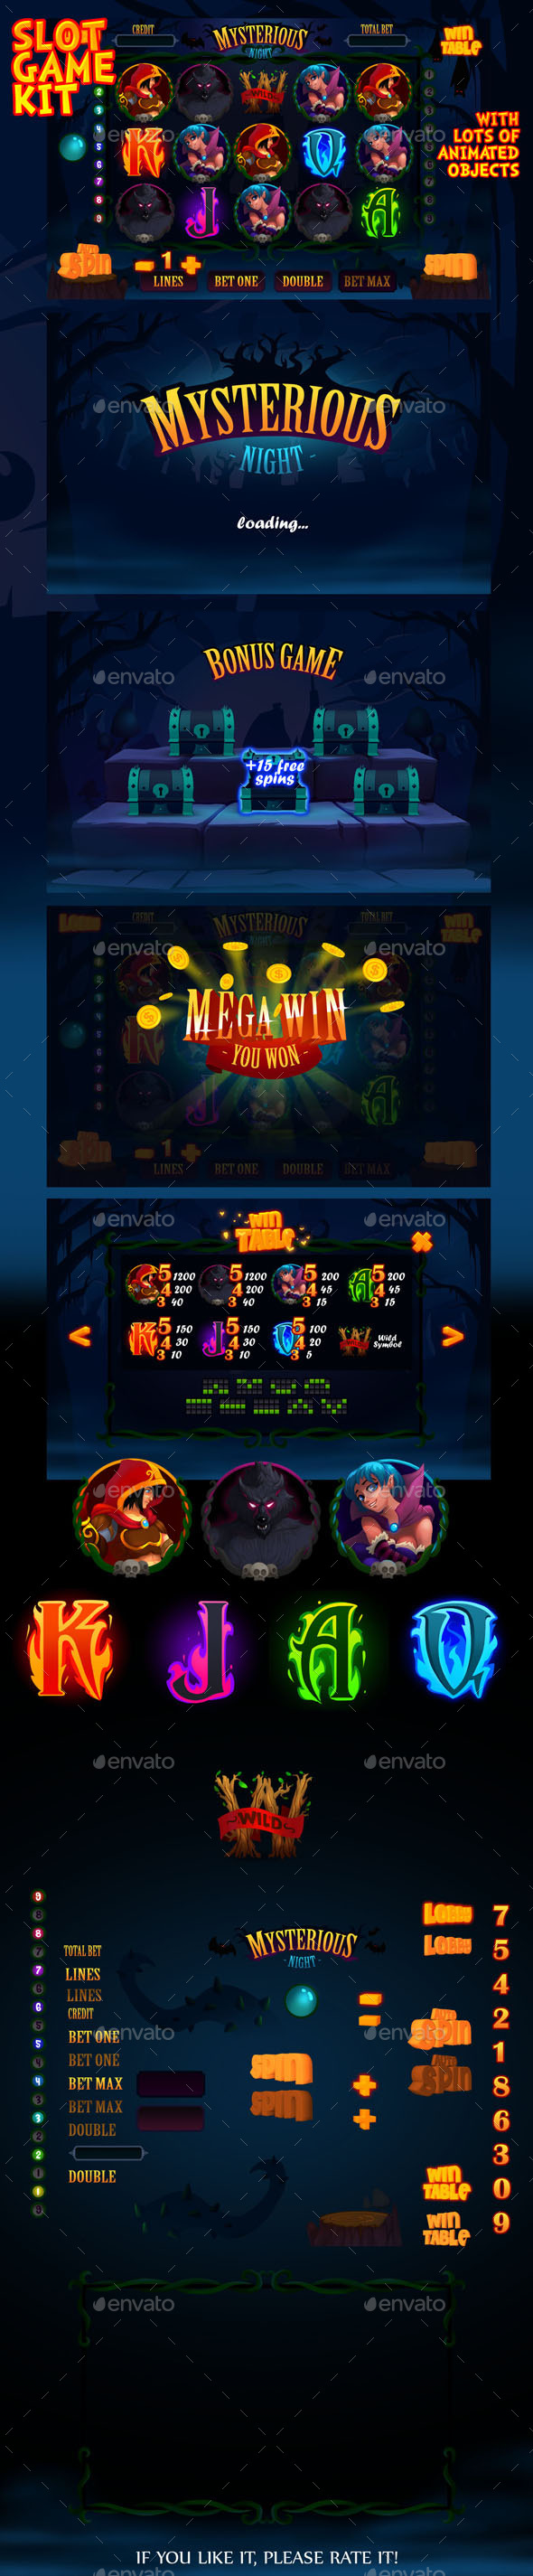 Mysterious night slot game kit - Game Kits Game Assets